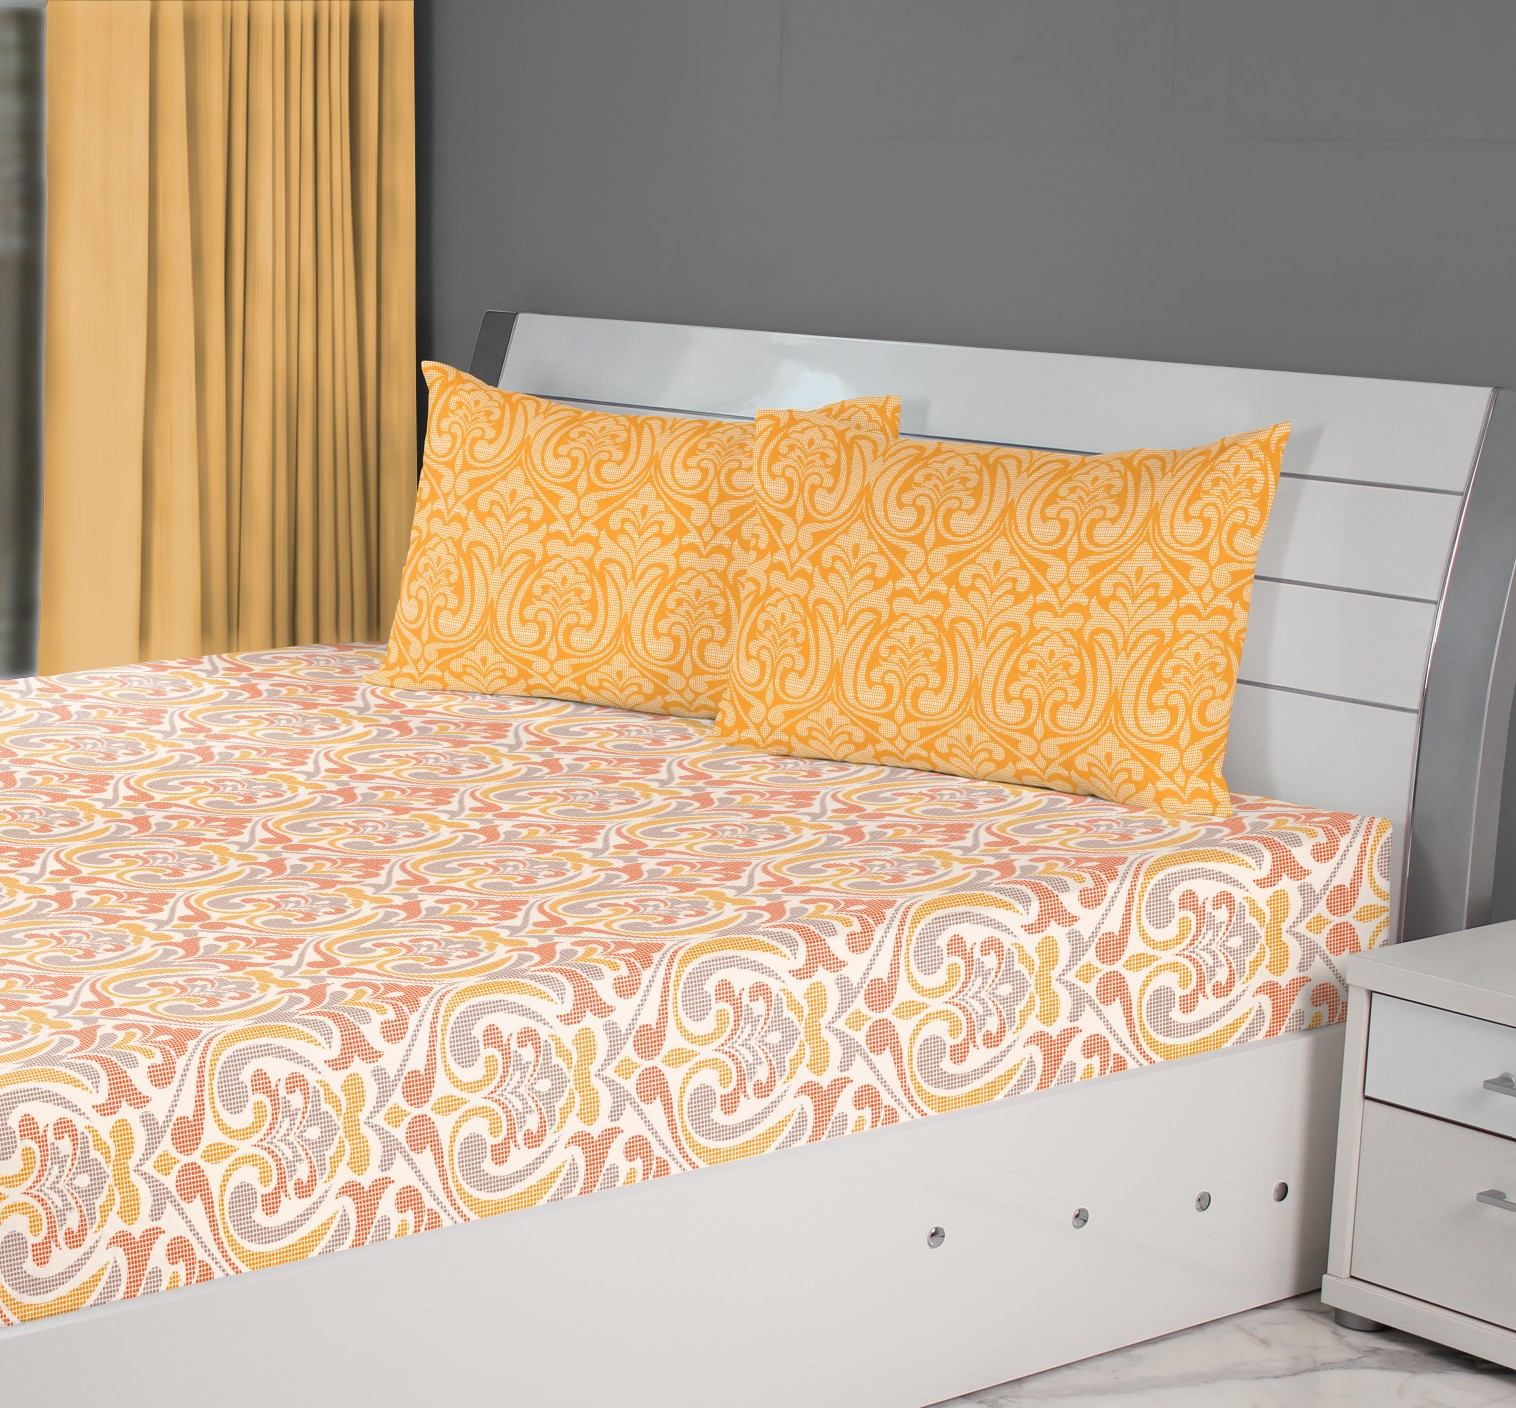 Fiesta Mosaic Double Bedsheet Rust Cotton Double Bedsheets in Rust Colour by Living Essence